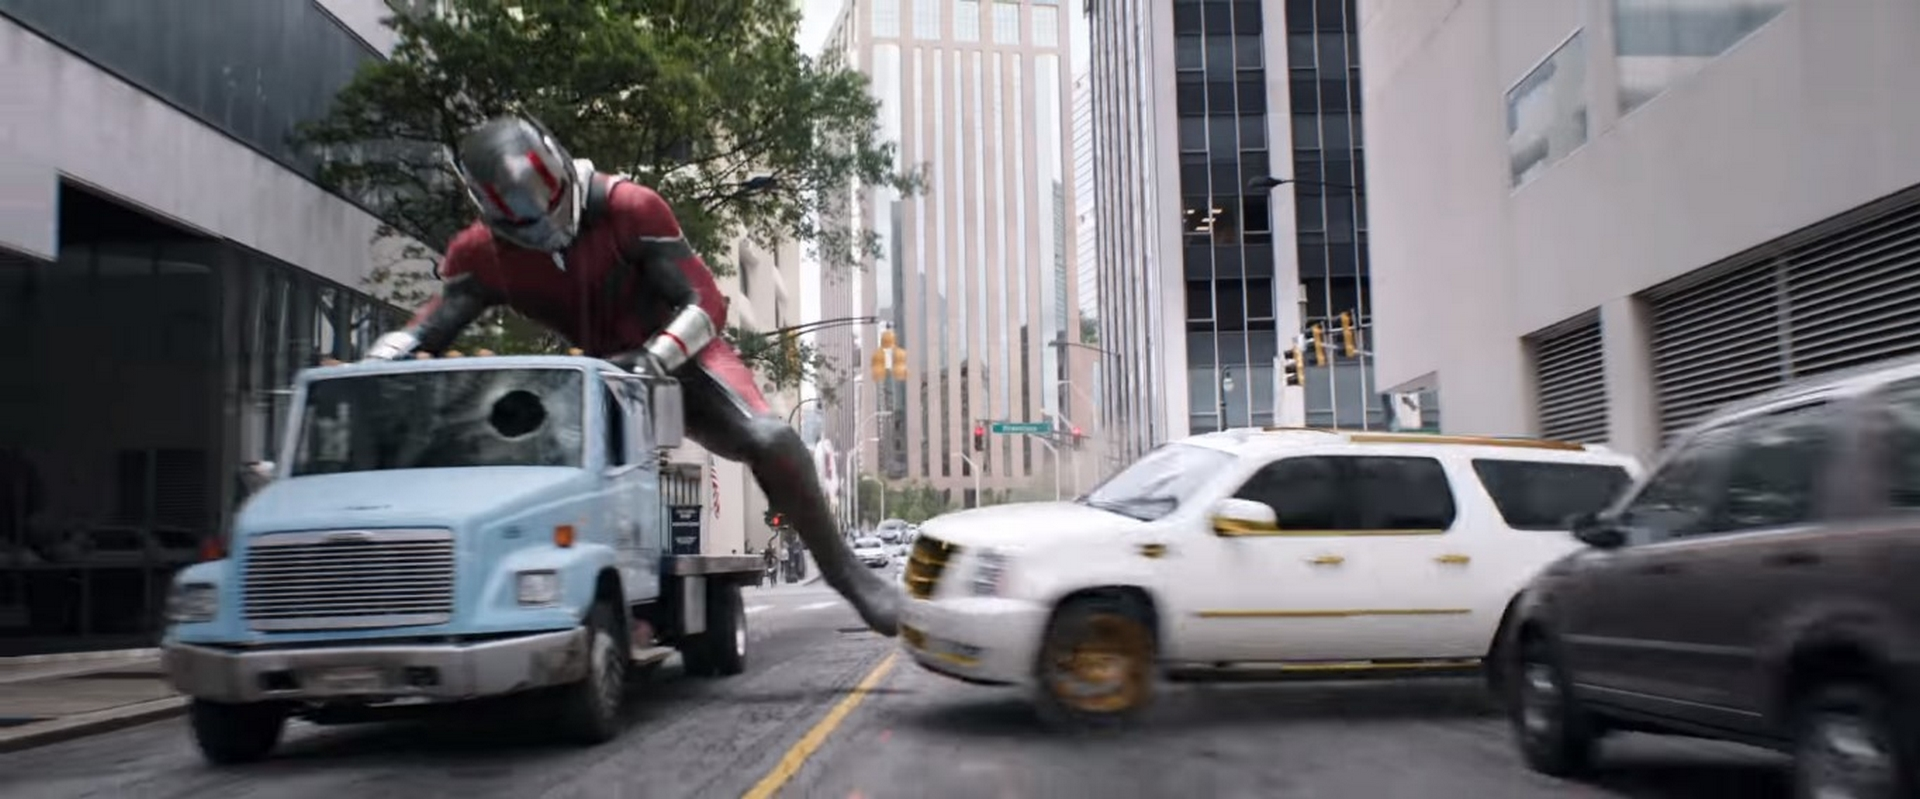 ART OF THE CUT with Ant-Man and the Wasp's Craig Wood, ACE 6